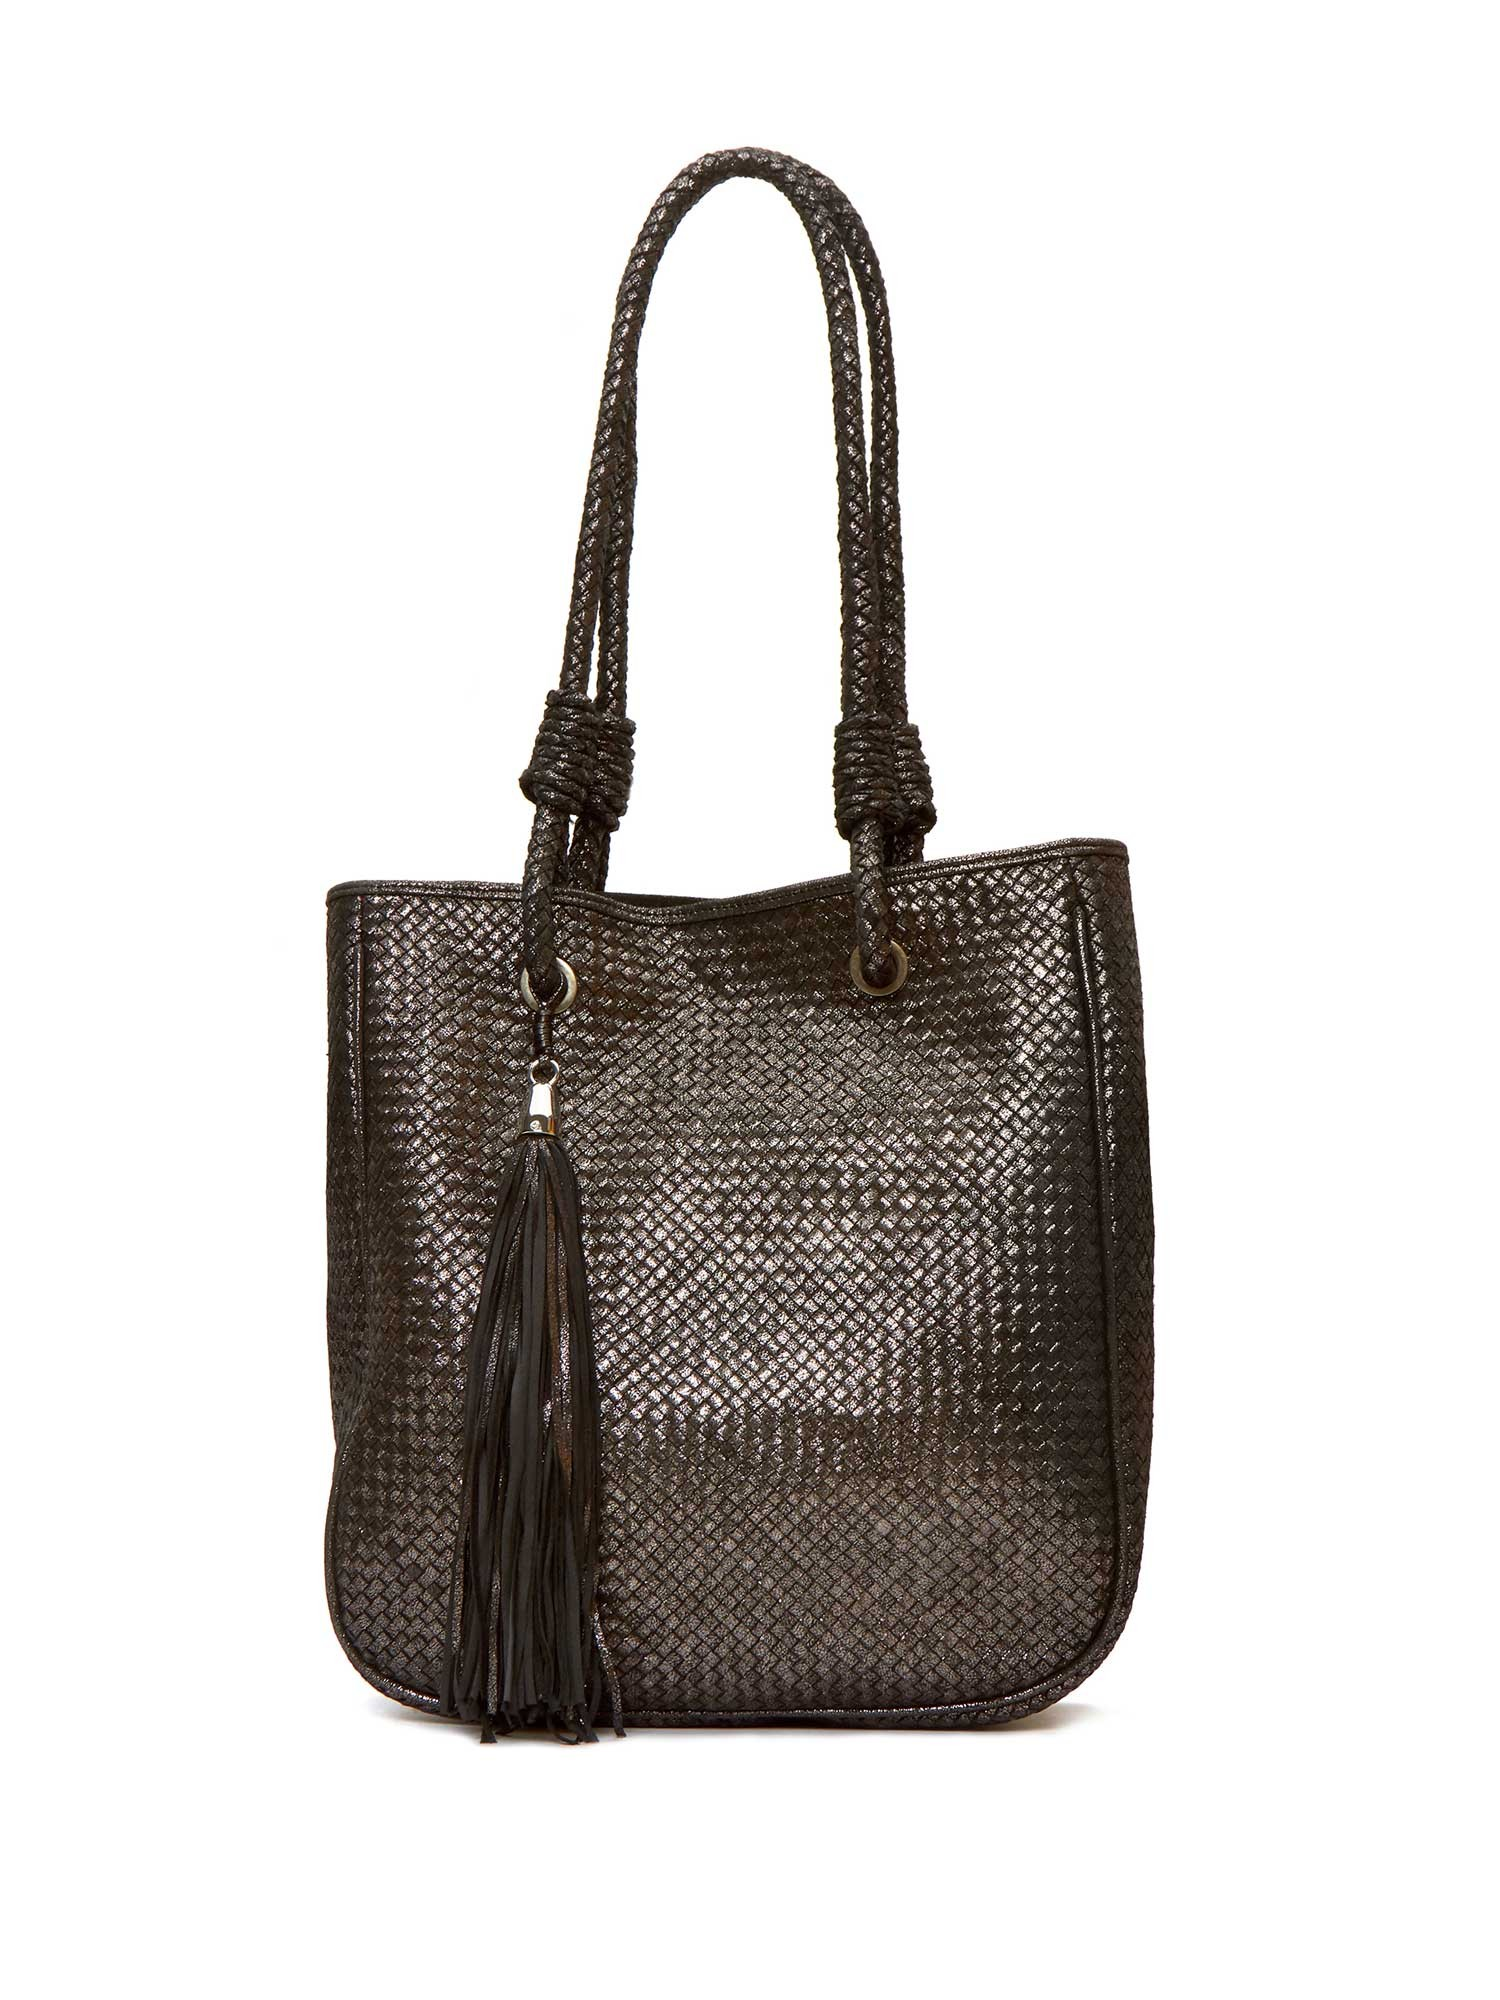 CARUSSO BRAIDED ANTHRACITE BAG